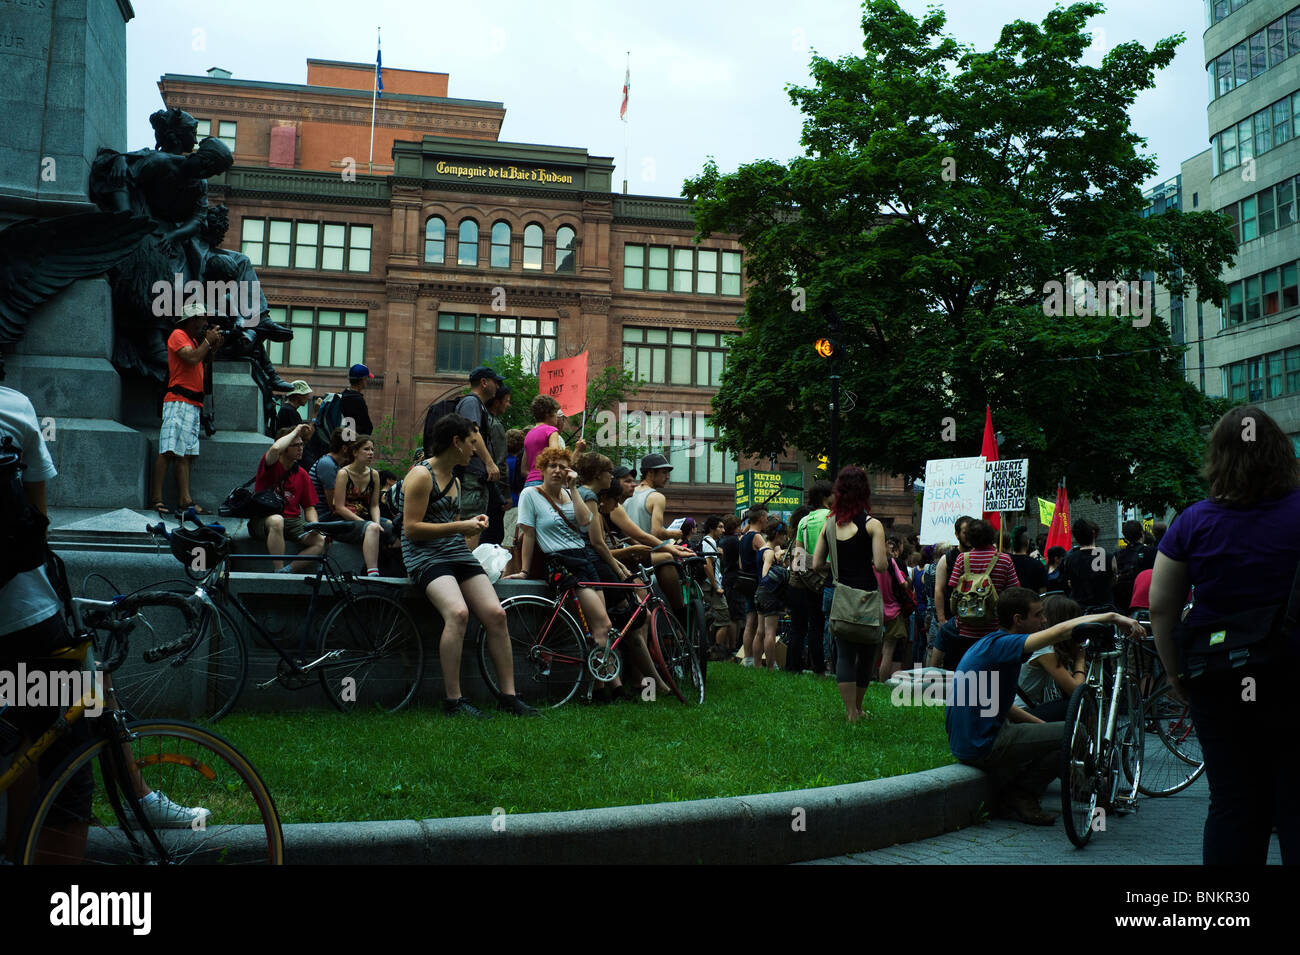 Protesters at anti-G20 detainee rally in Phillips Square, Montréal. - Stock Image